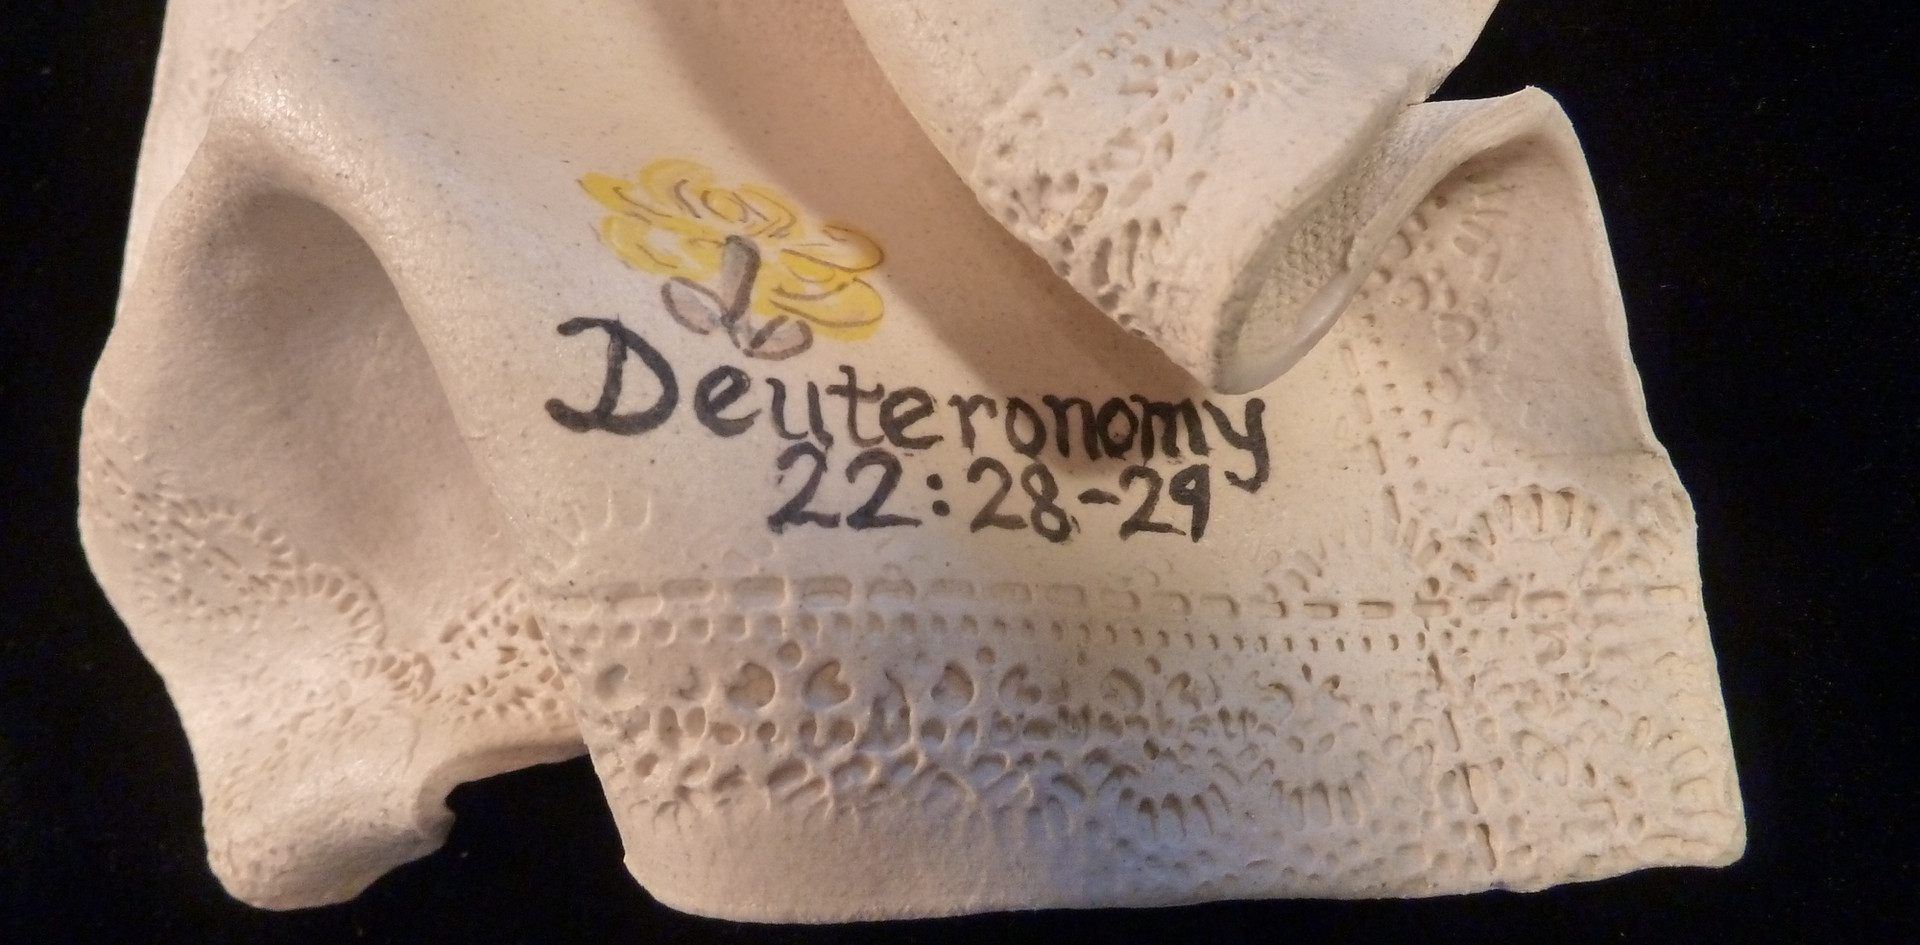 Deuteronomy 22:28-29 (Side View)